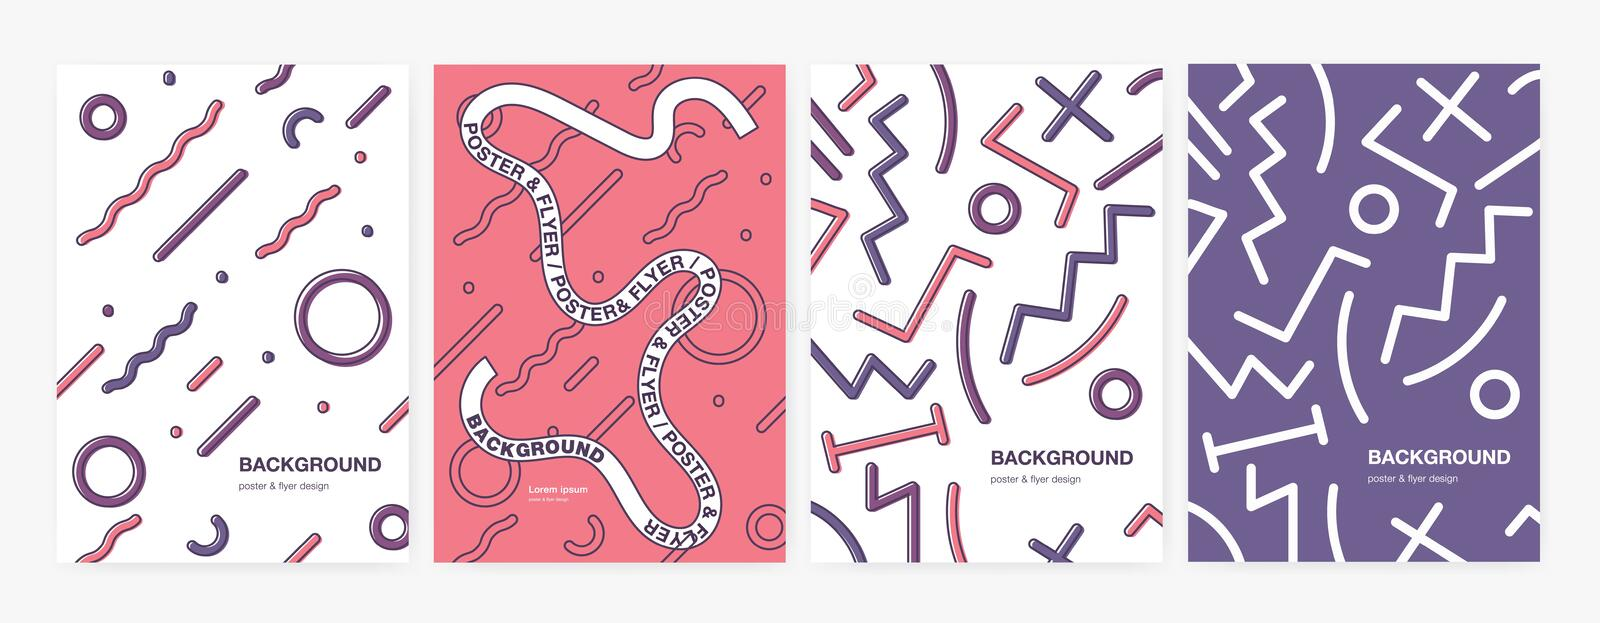 Collection of vertical backgrounds or backdrops with abstract geometric shapes, curved and zigzag lines. Set of poster stock illustration